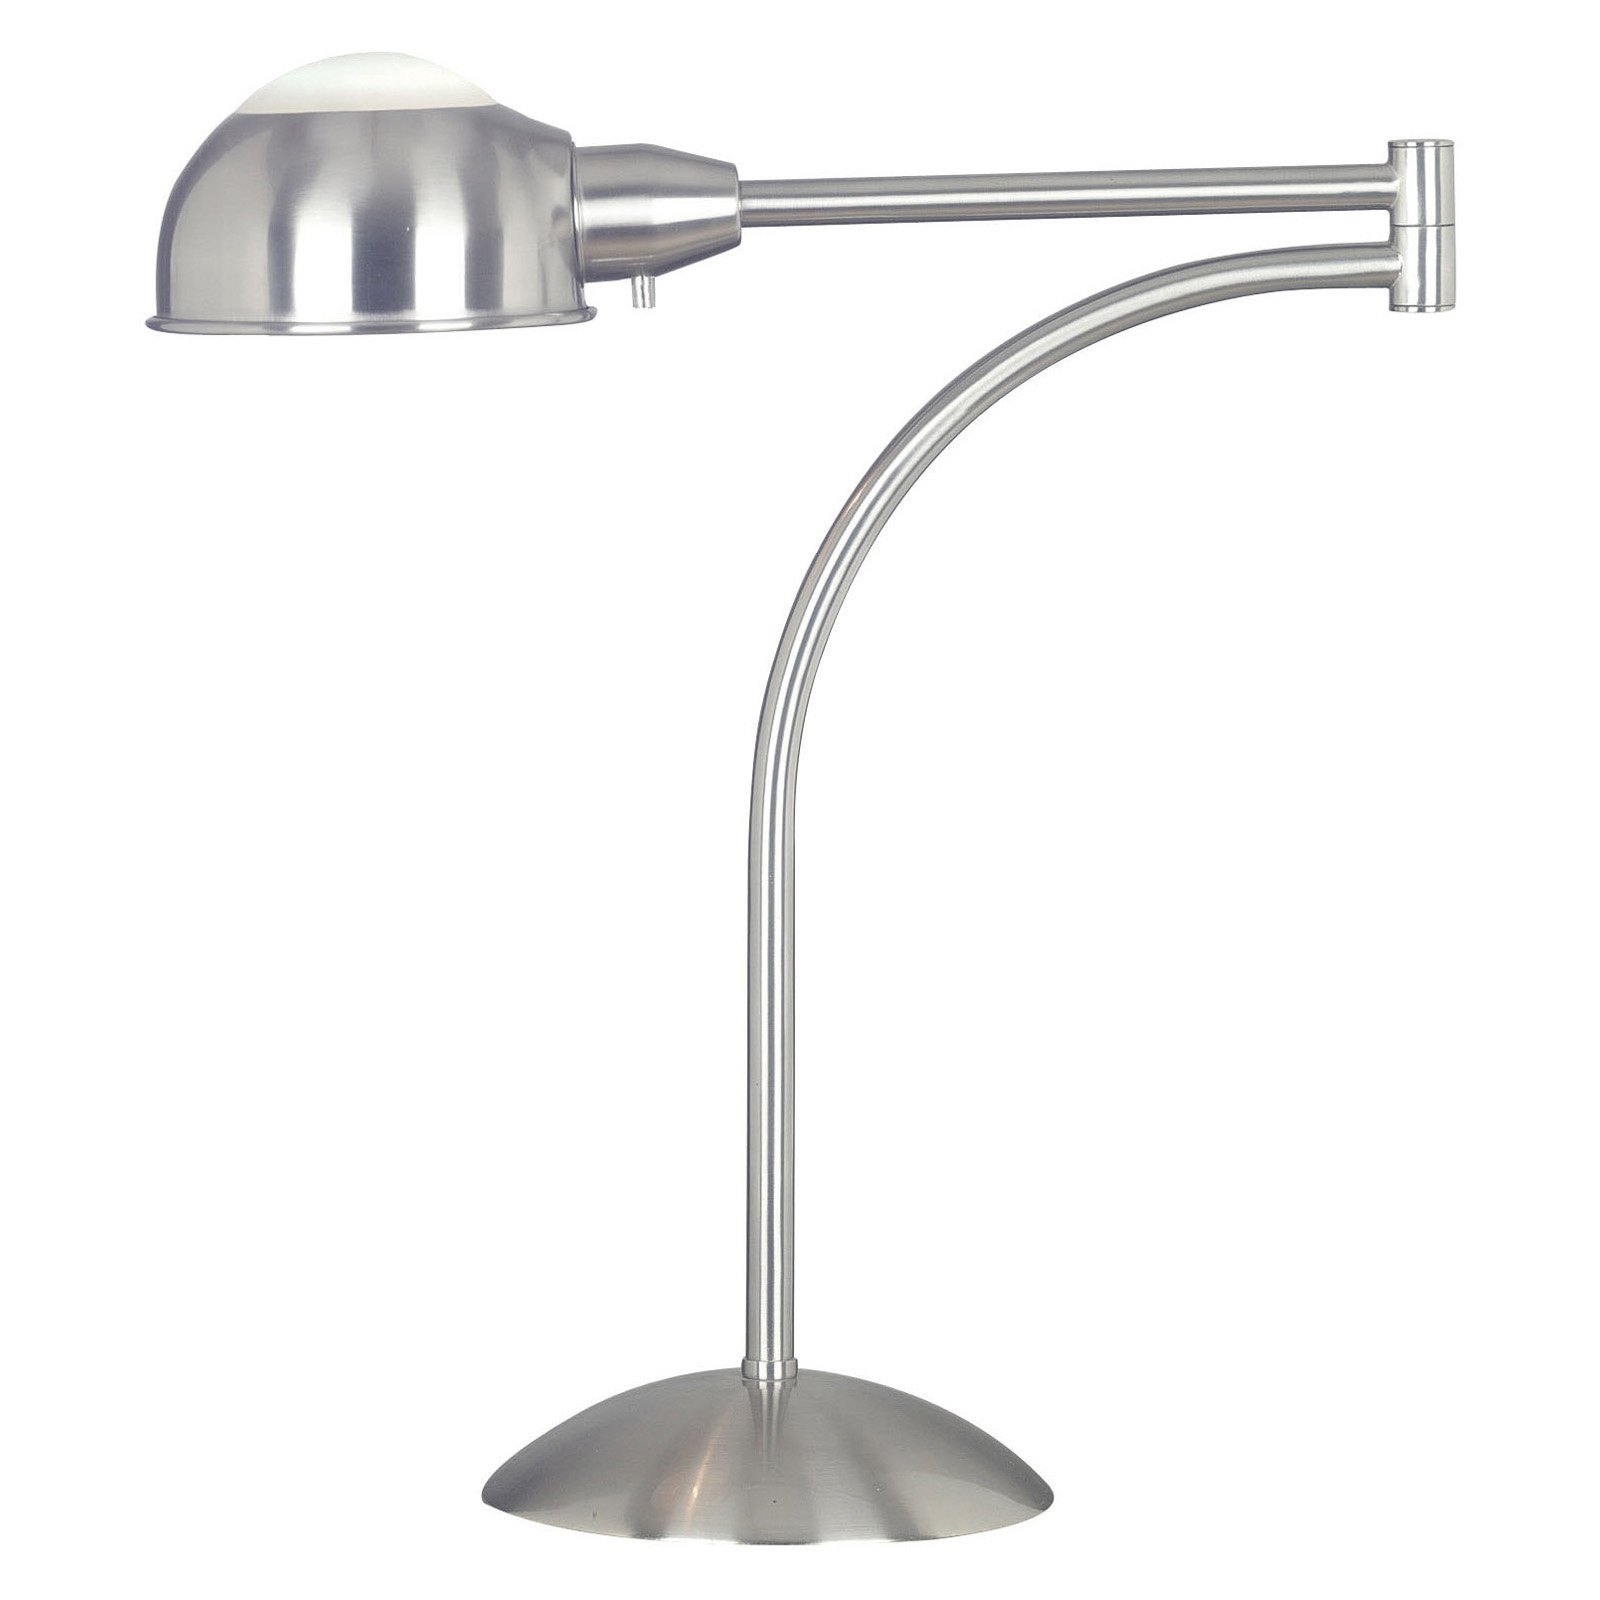 Best ideas about Swing Arm Desk Lamp . Save or Pin Kenroy Home Acadia Swing Arm Table Lamp Desk Lamps at Now.